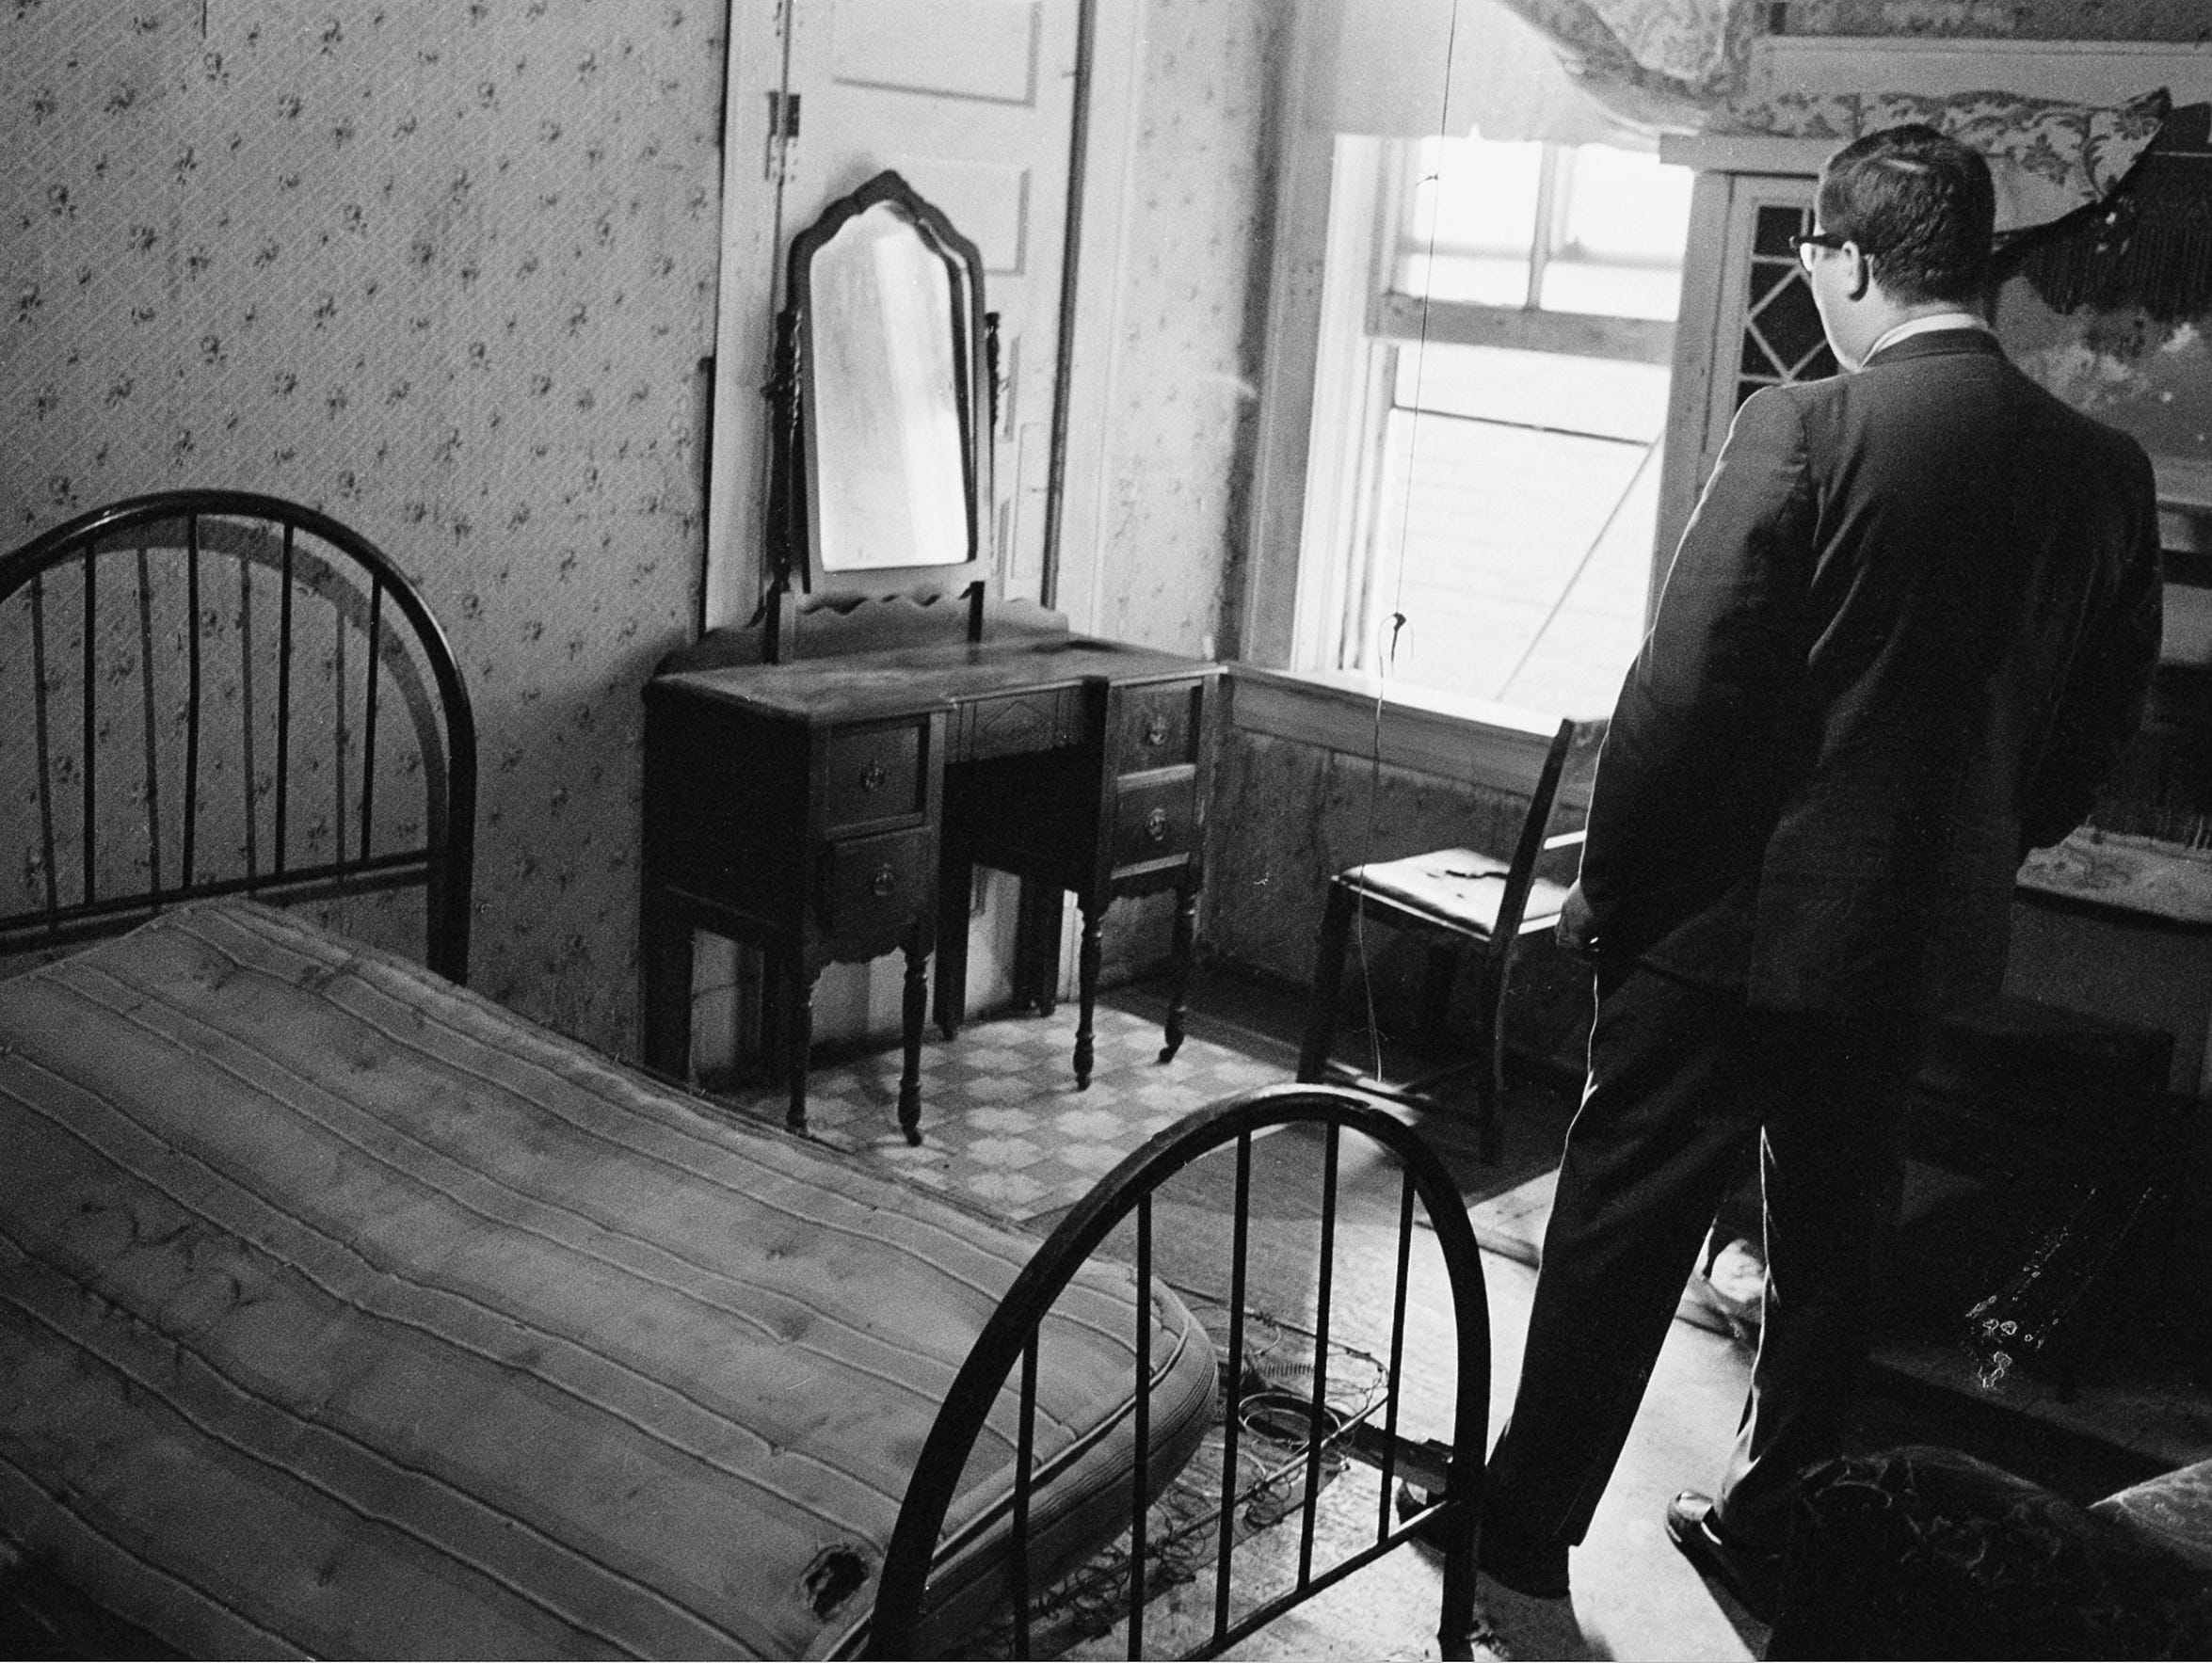 A news reporter stands in the room rented by the assassin